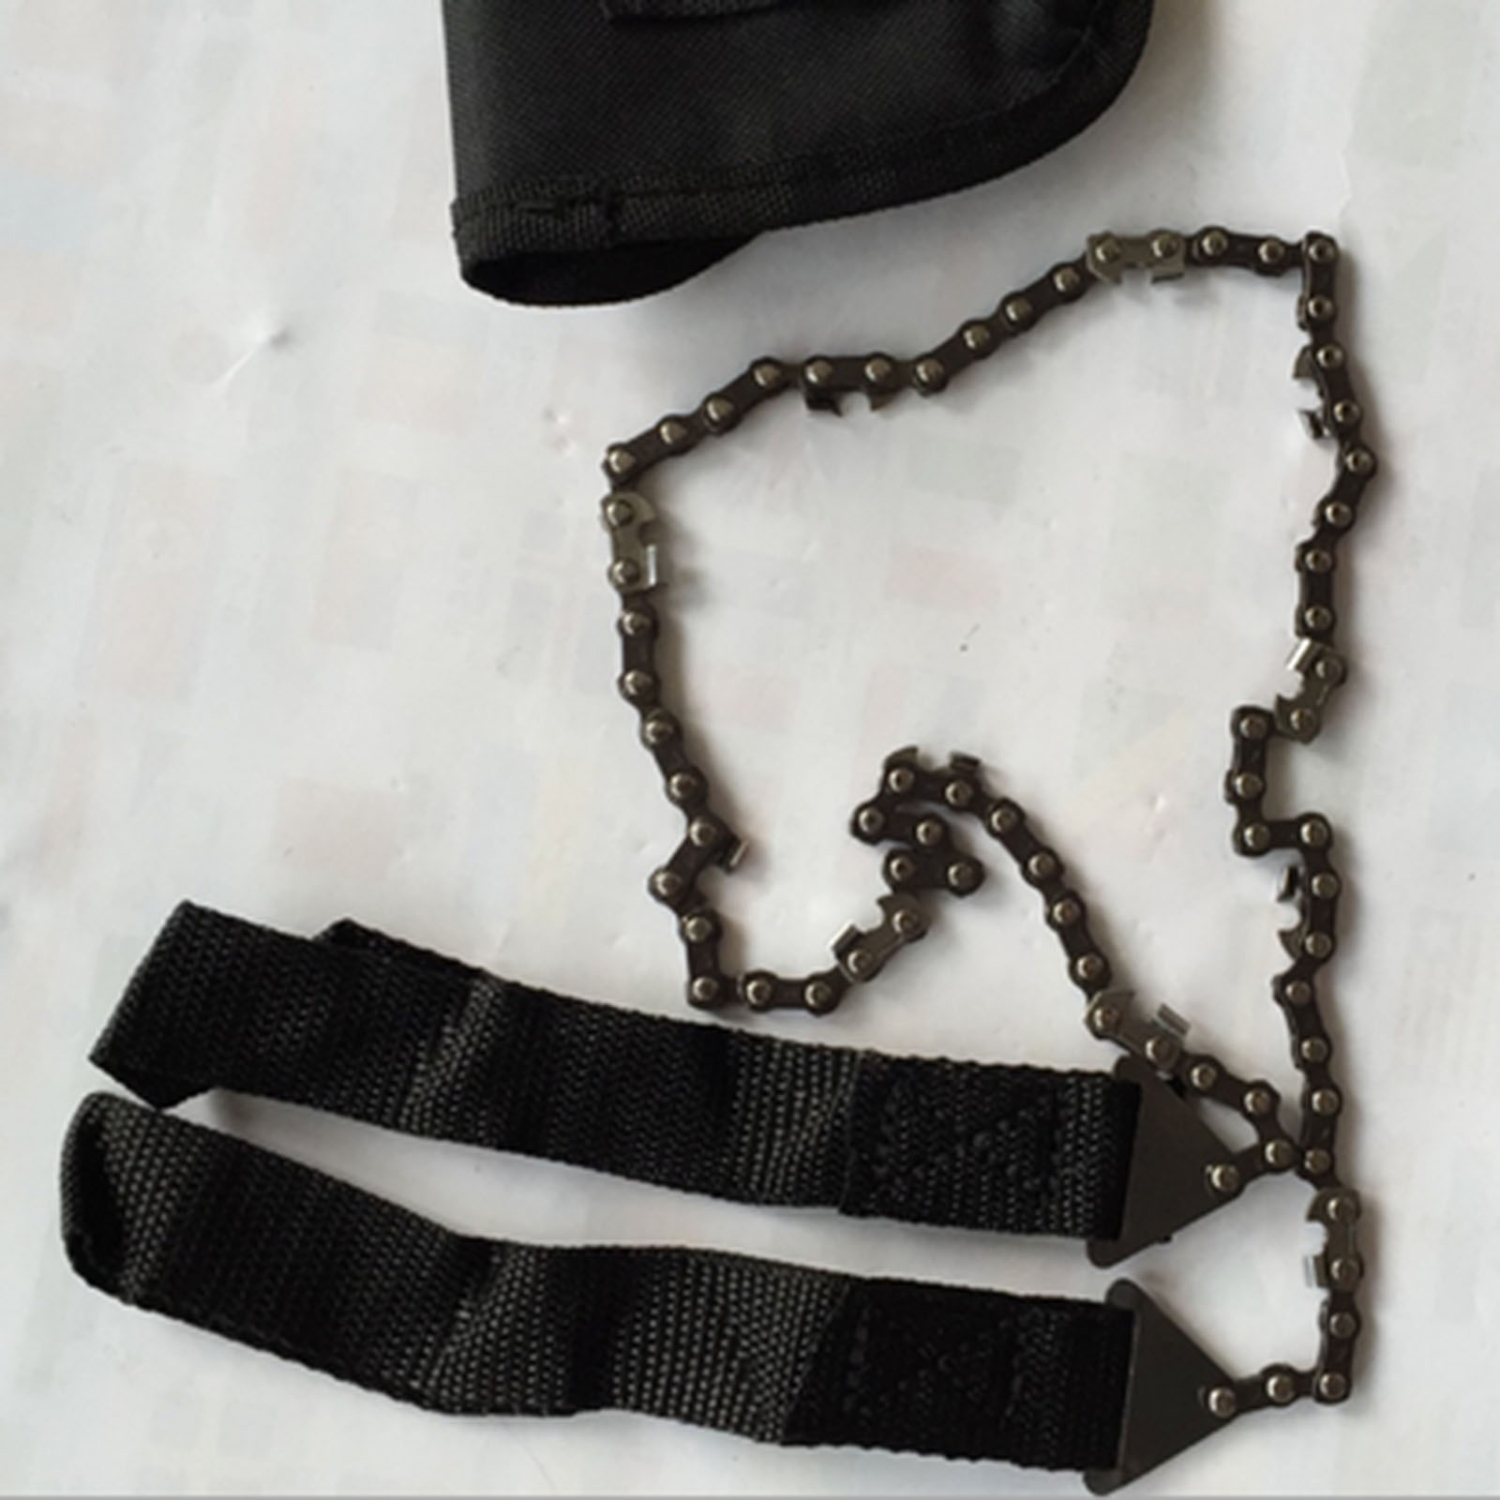 how to make rope chain saw